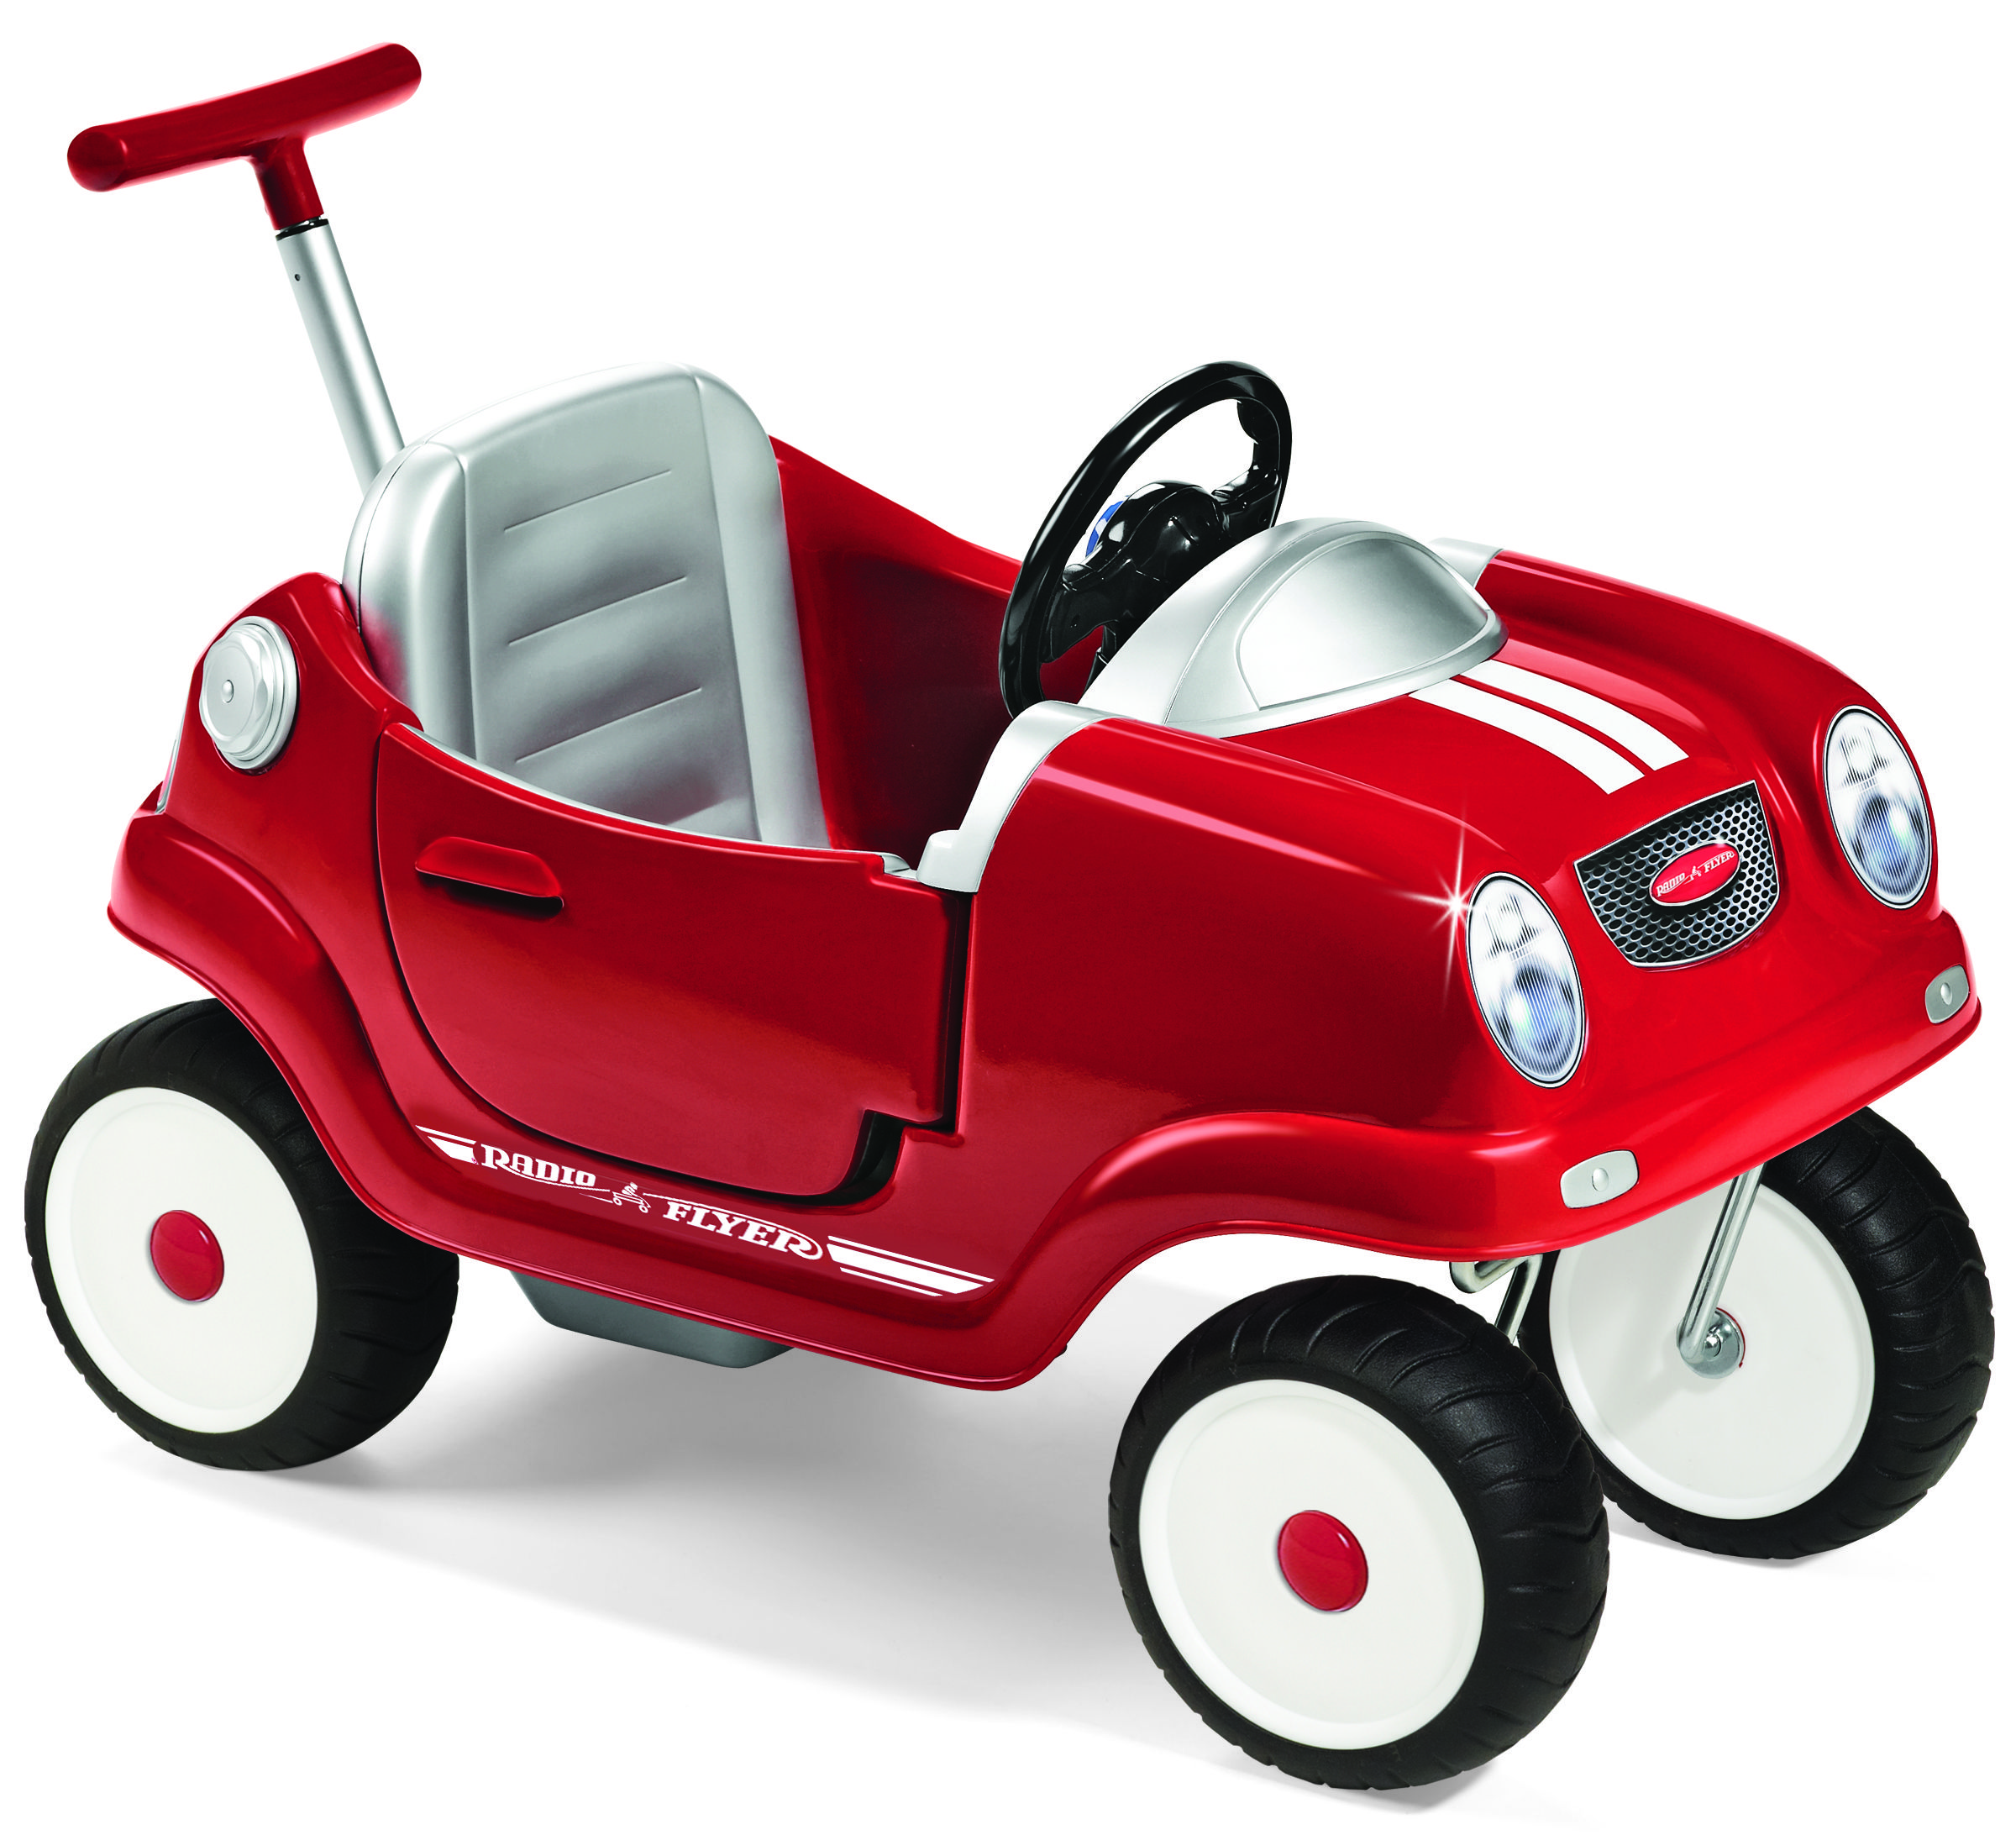 Radio Flyer Steer & Stroll Coupe Kids ride on toys